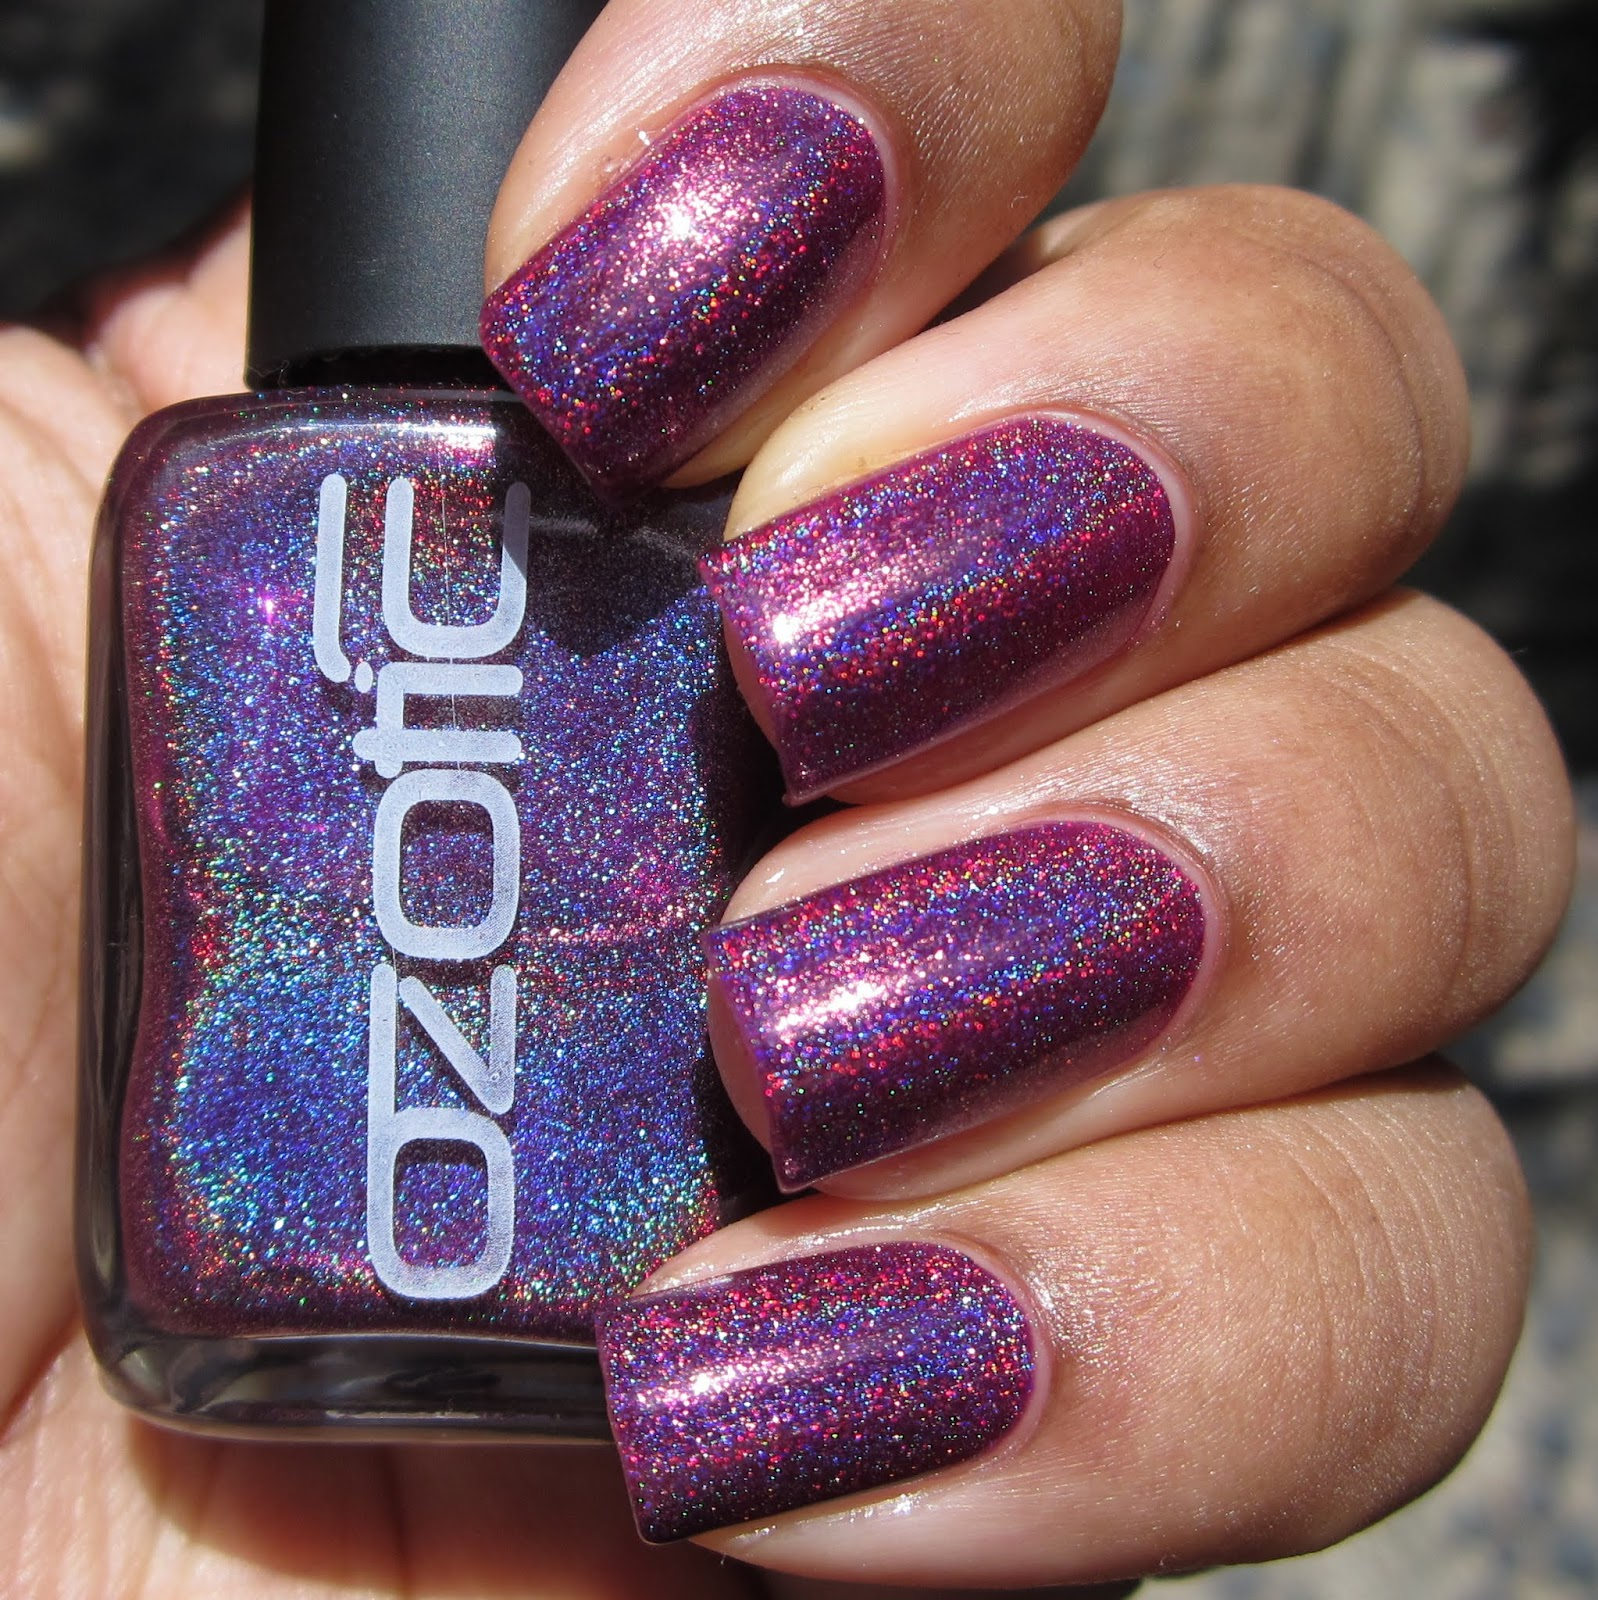 Ozotic Pro 513 purple holo nail polish swatch